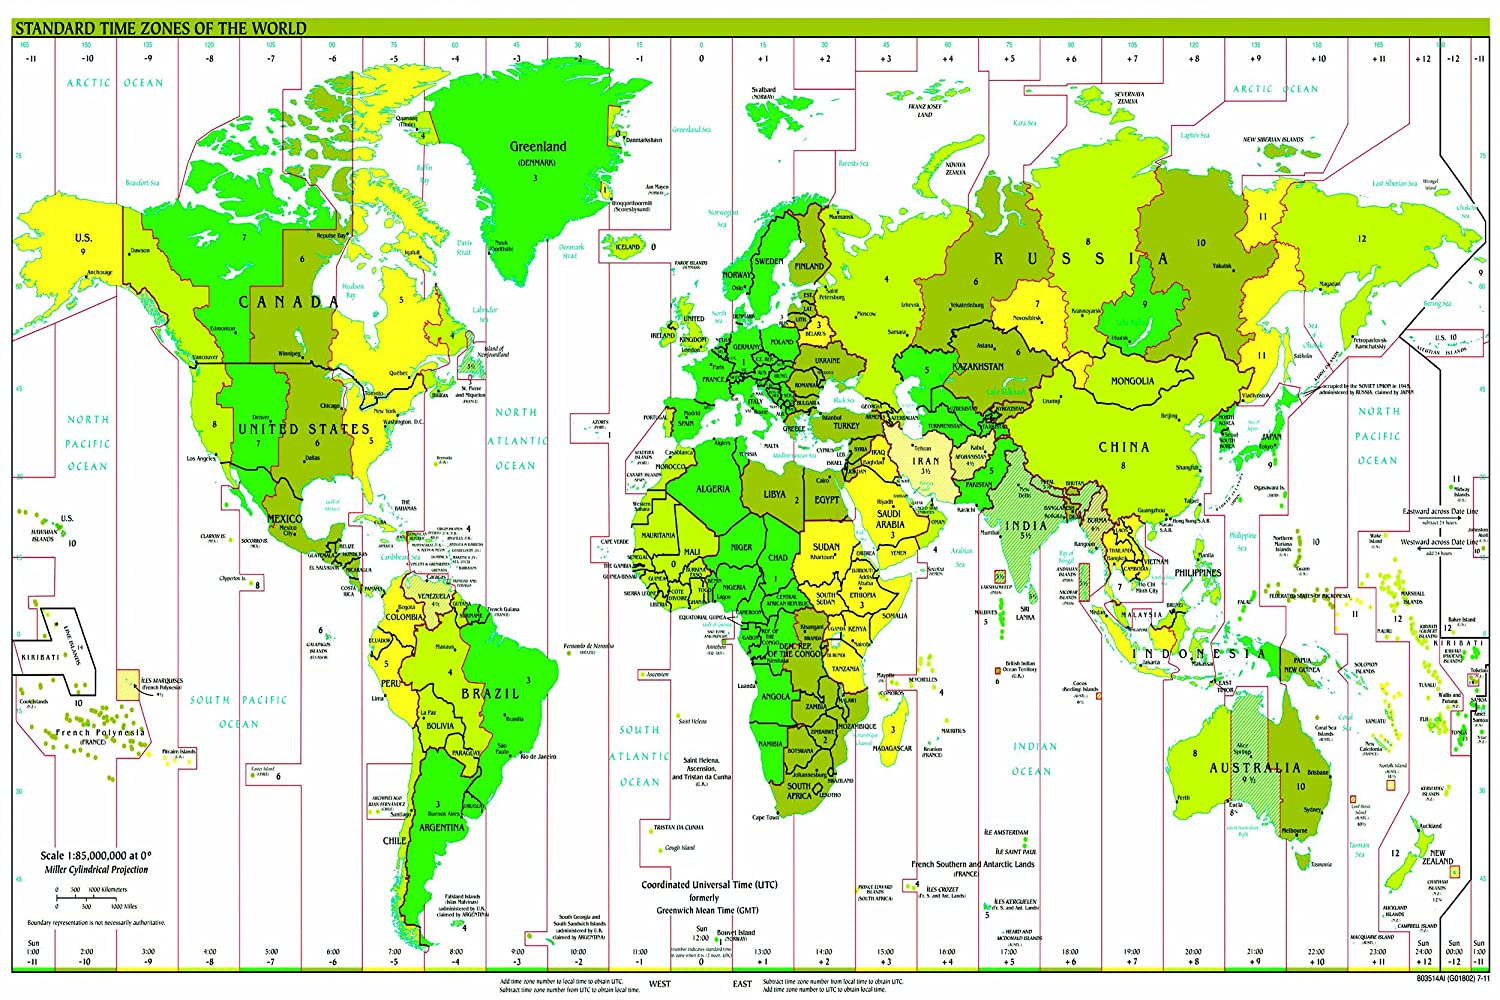 Laminated standard time zones world map poster size 15x225 laminated standard time zones world map poster size 15x225 inches educational teaching resource wall chart amazon office products sciox Choice Image